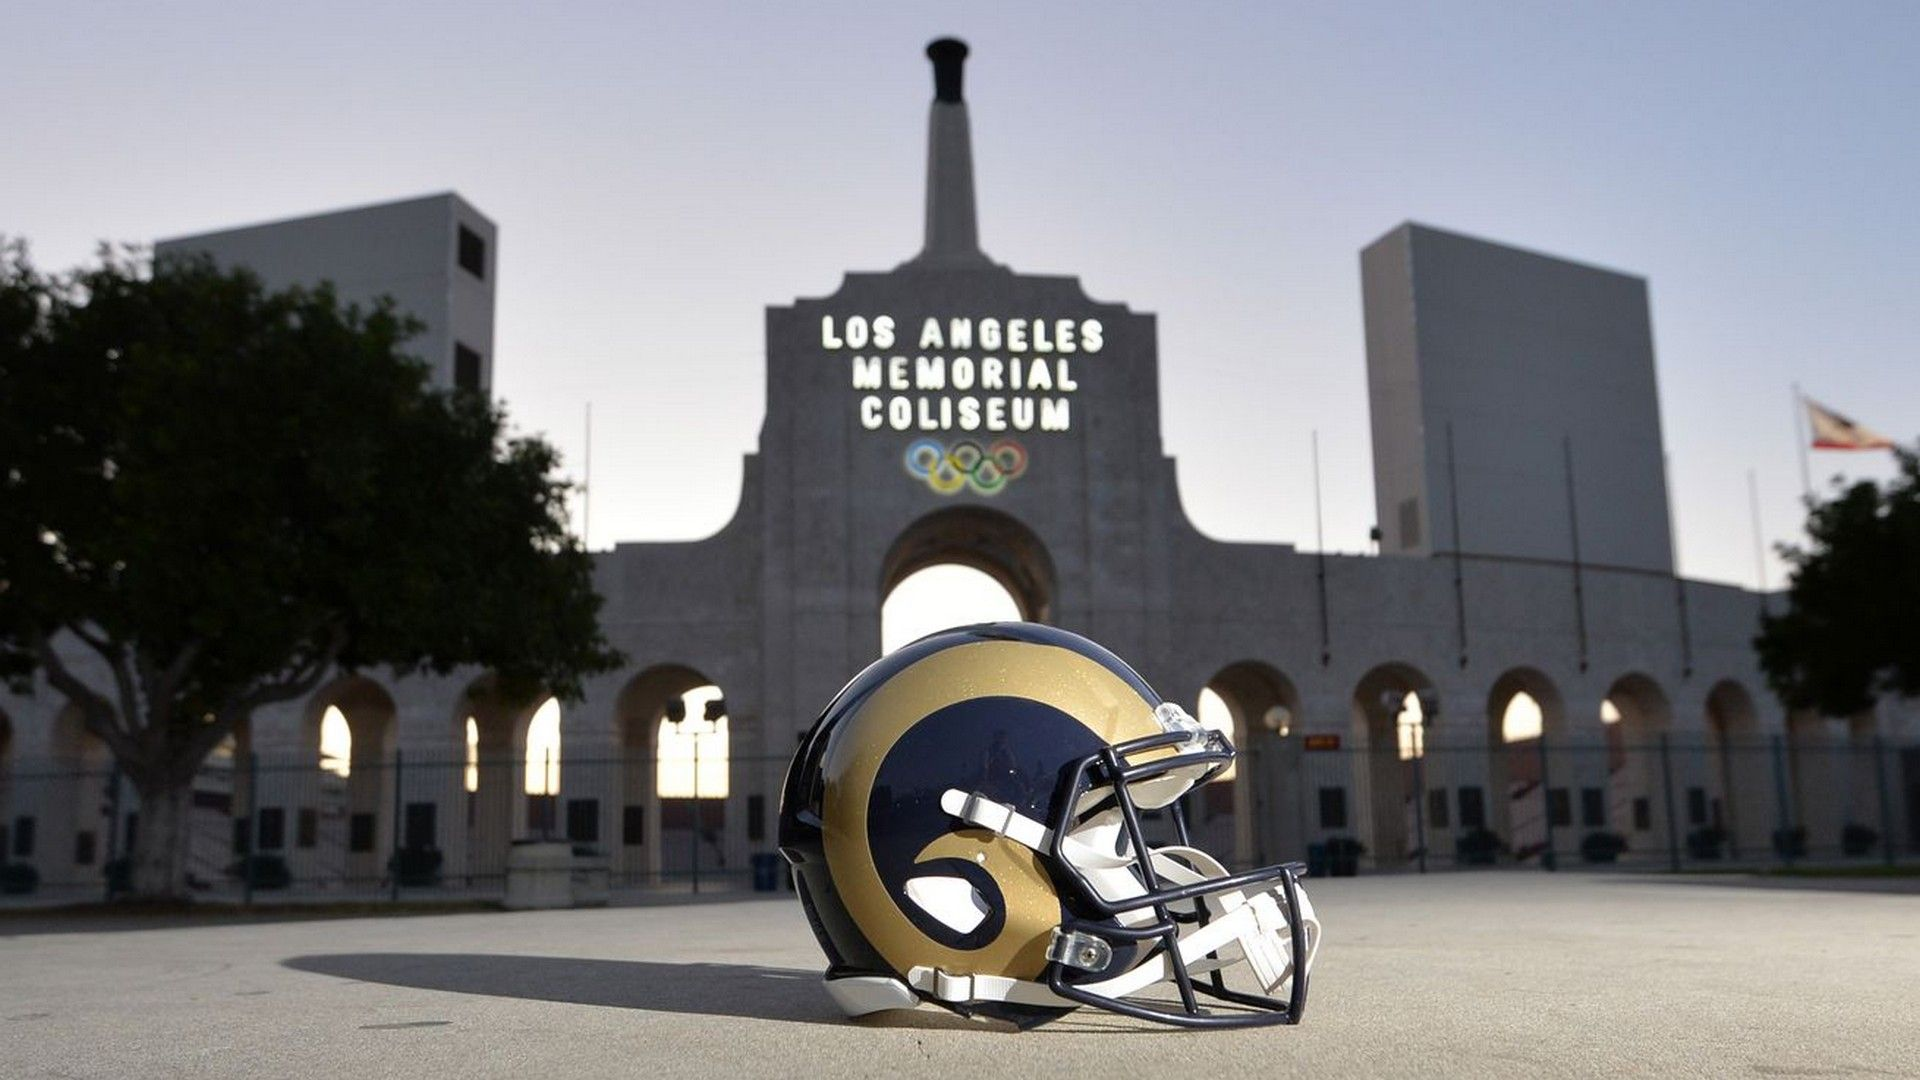 Hd Los Angeles Rams Wallpapers 2020 Nfl Football Wallpapers Ram Wallpaper Best Wallpaper Hd Los Angeles Rams